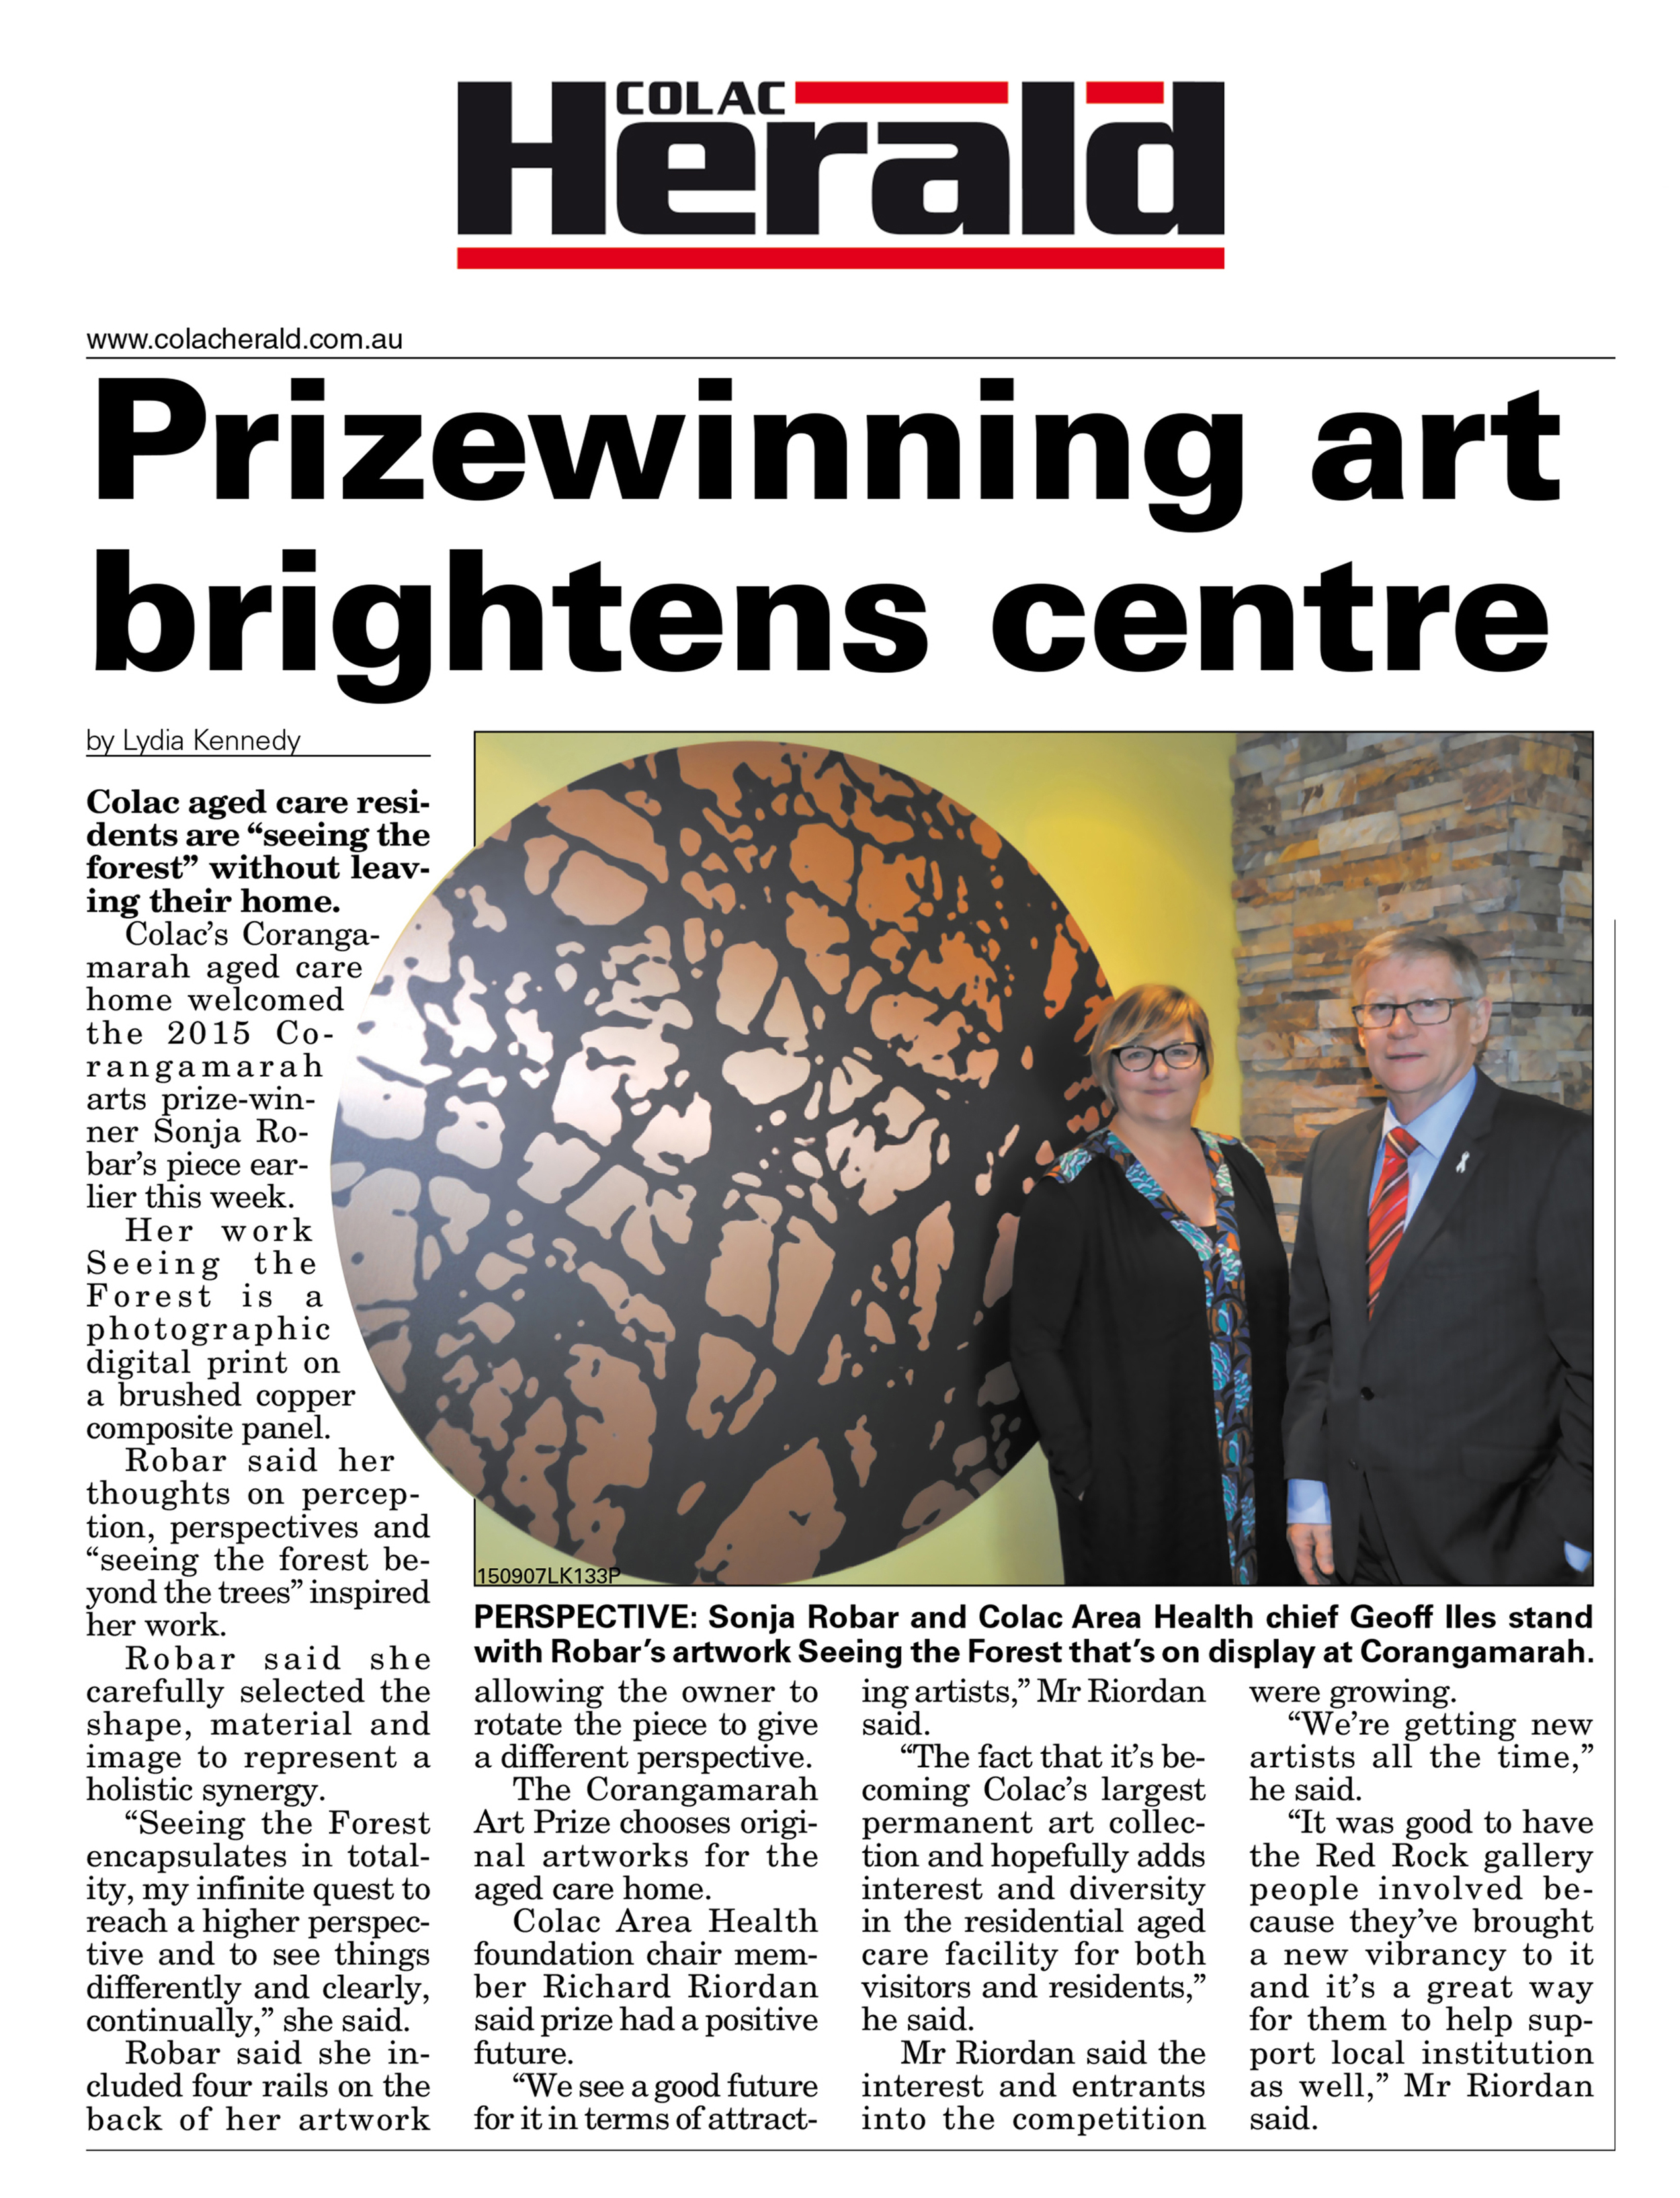 Colac Herald - August 2015